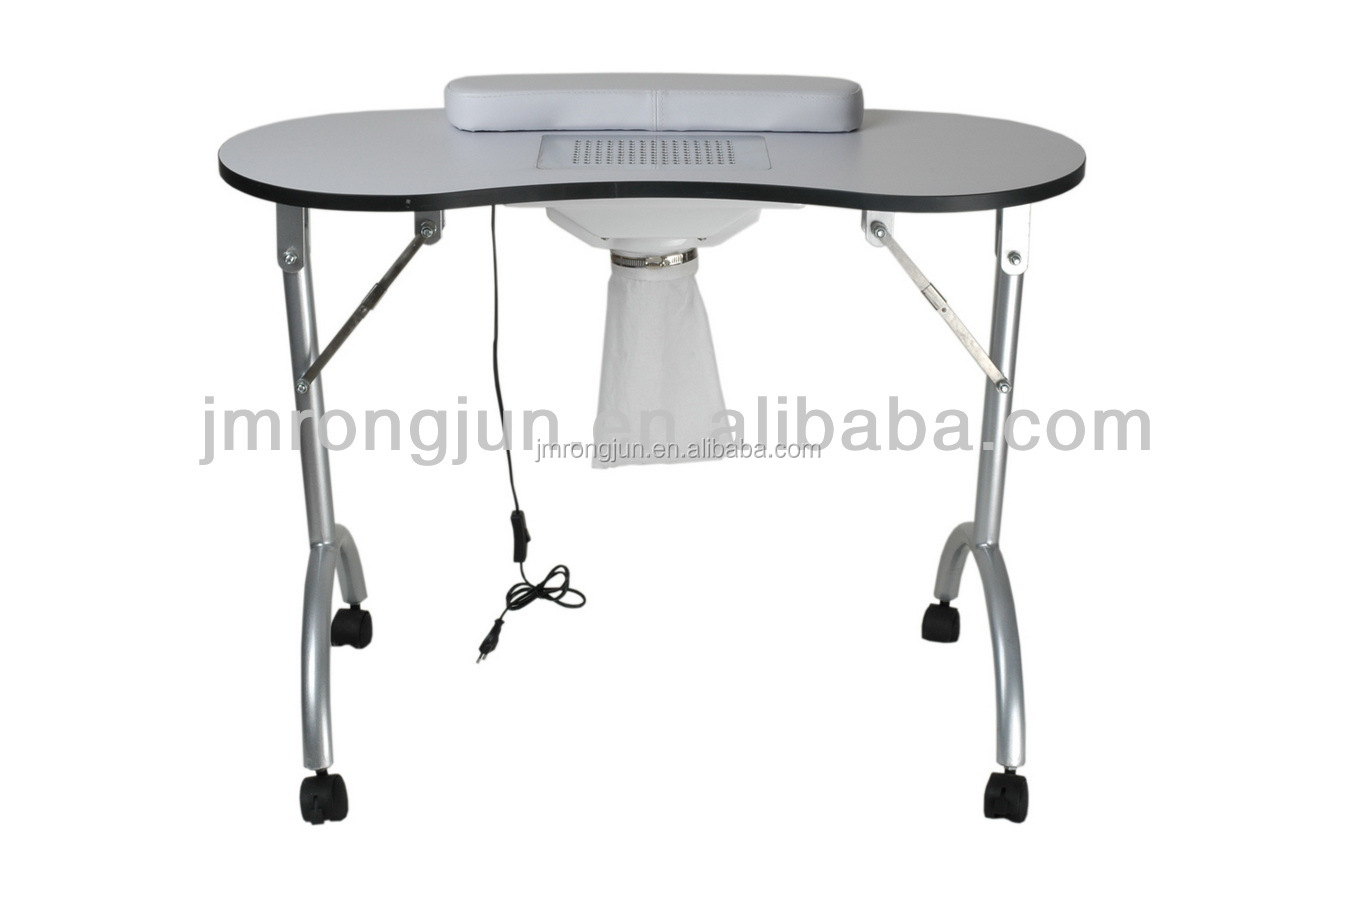 100 nail furniture for sale salon ags beauty for 2nd hand salon furniture sale